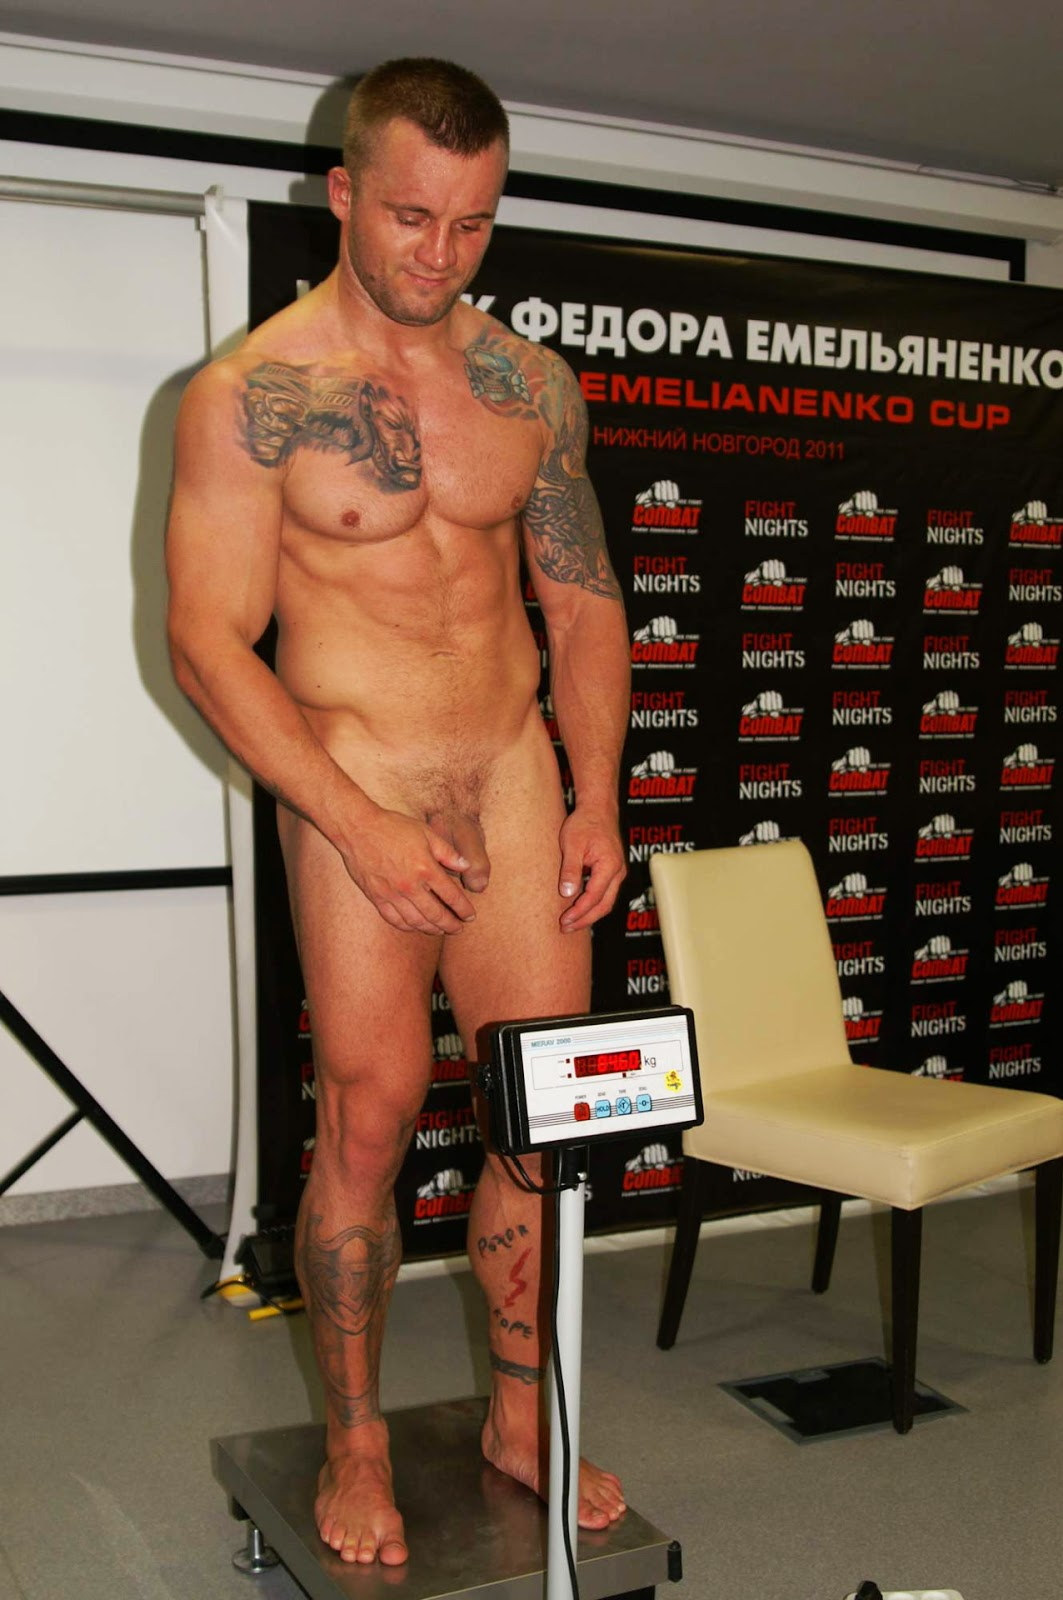 Girl naked boxer weigh